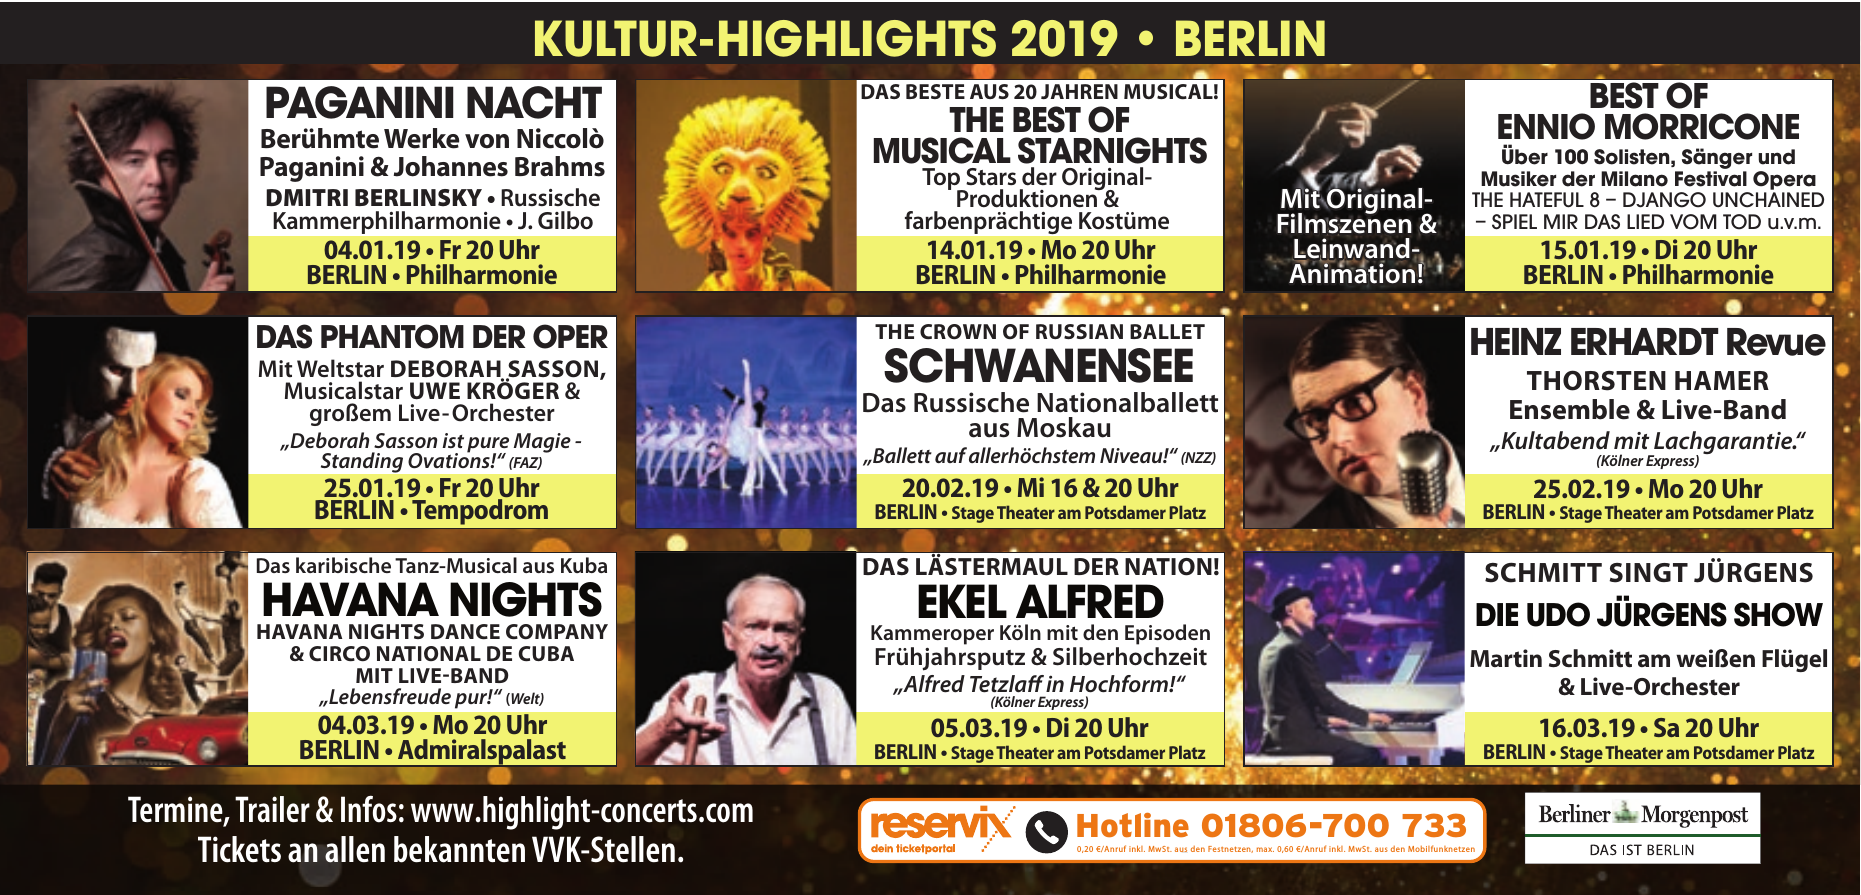 Kultur-Highlights 2019